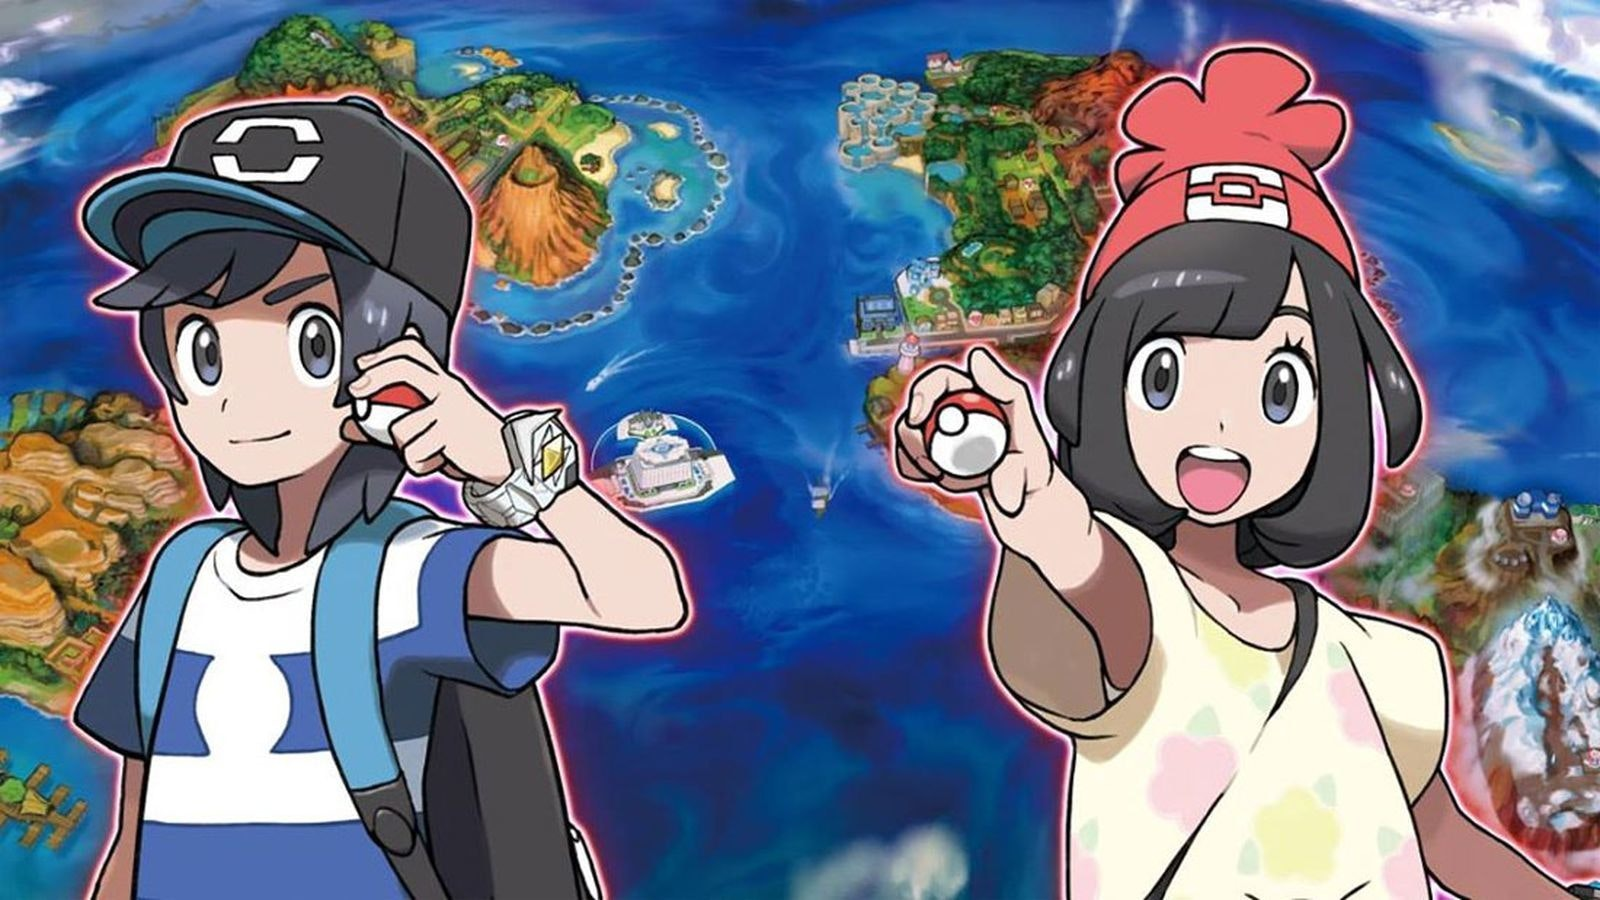 Images of sun and moon pokemon league battles